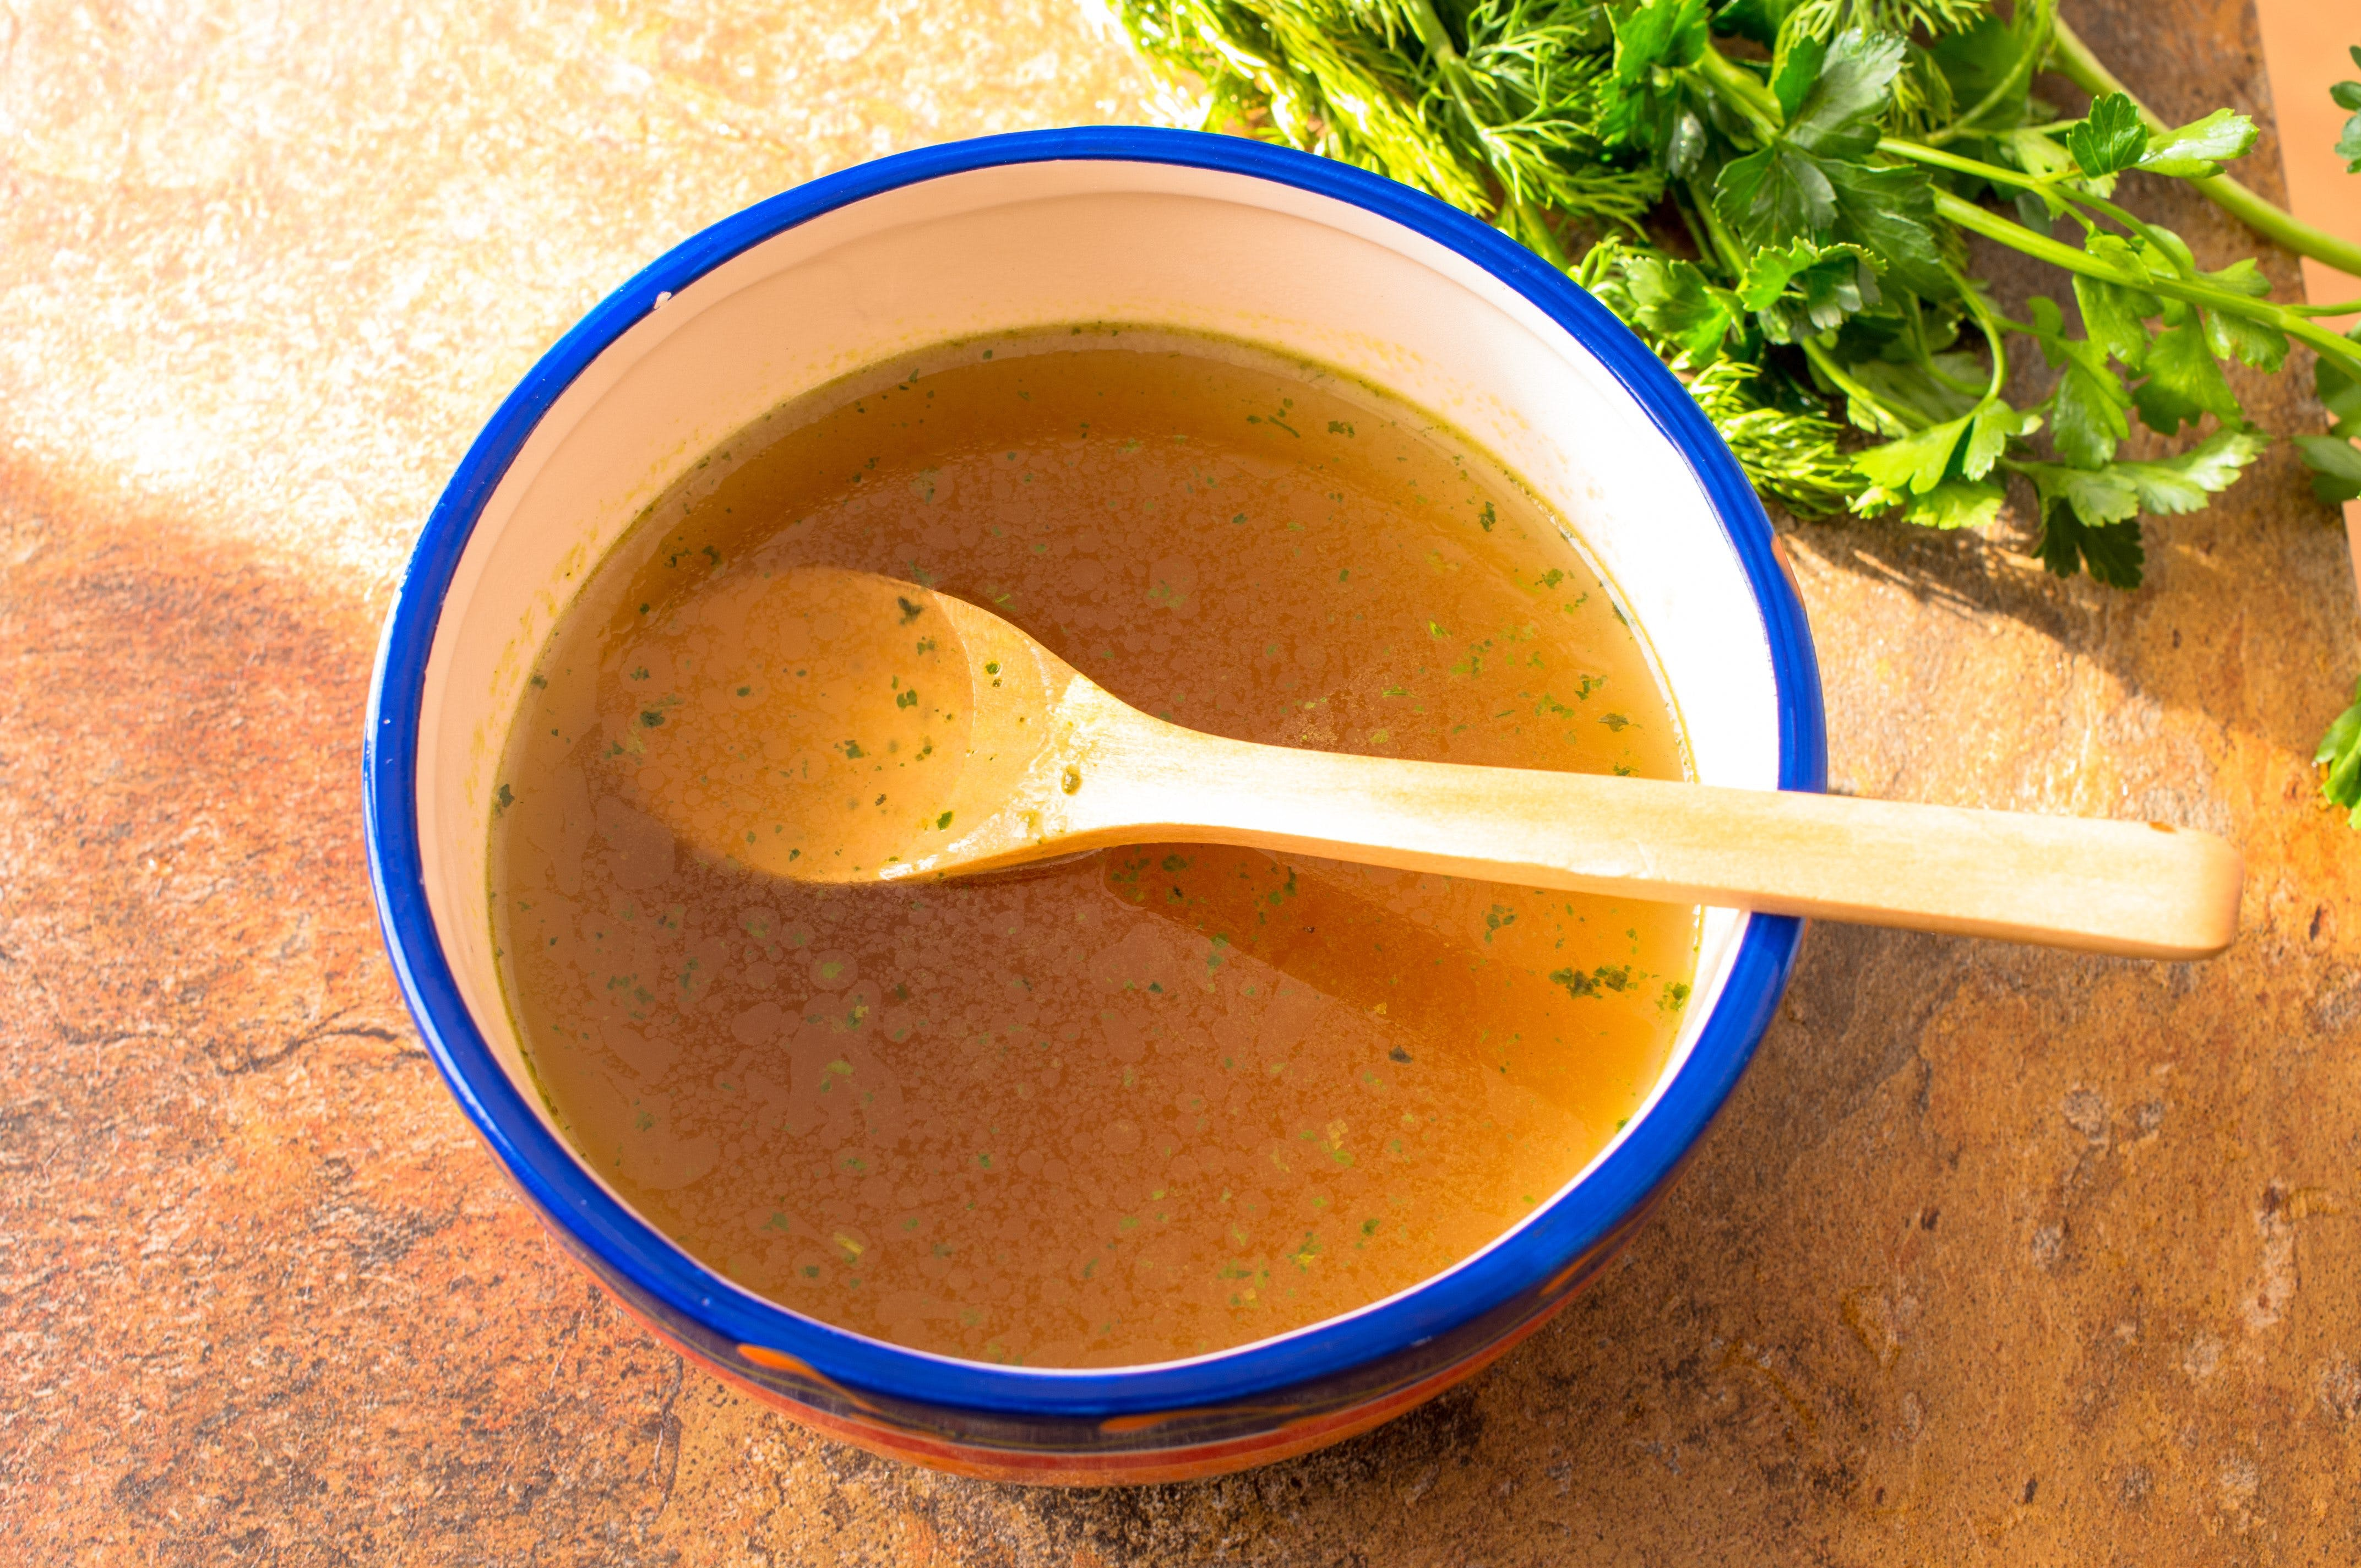 Beef broth with herbs